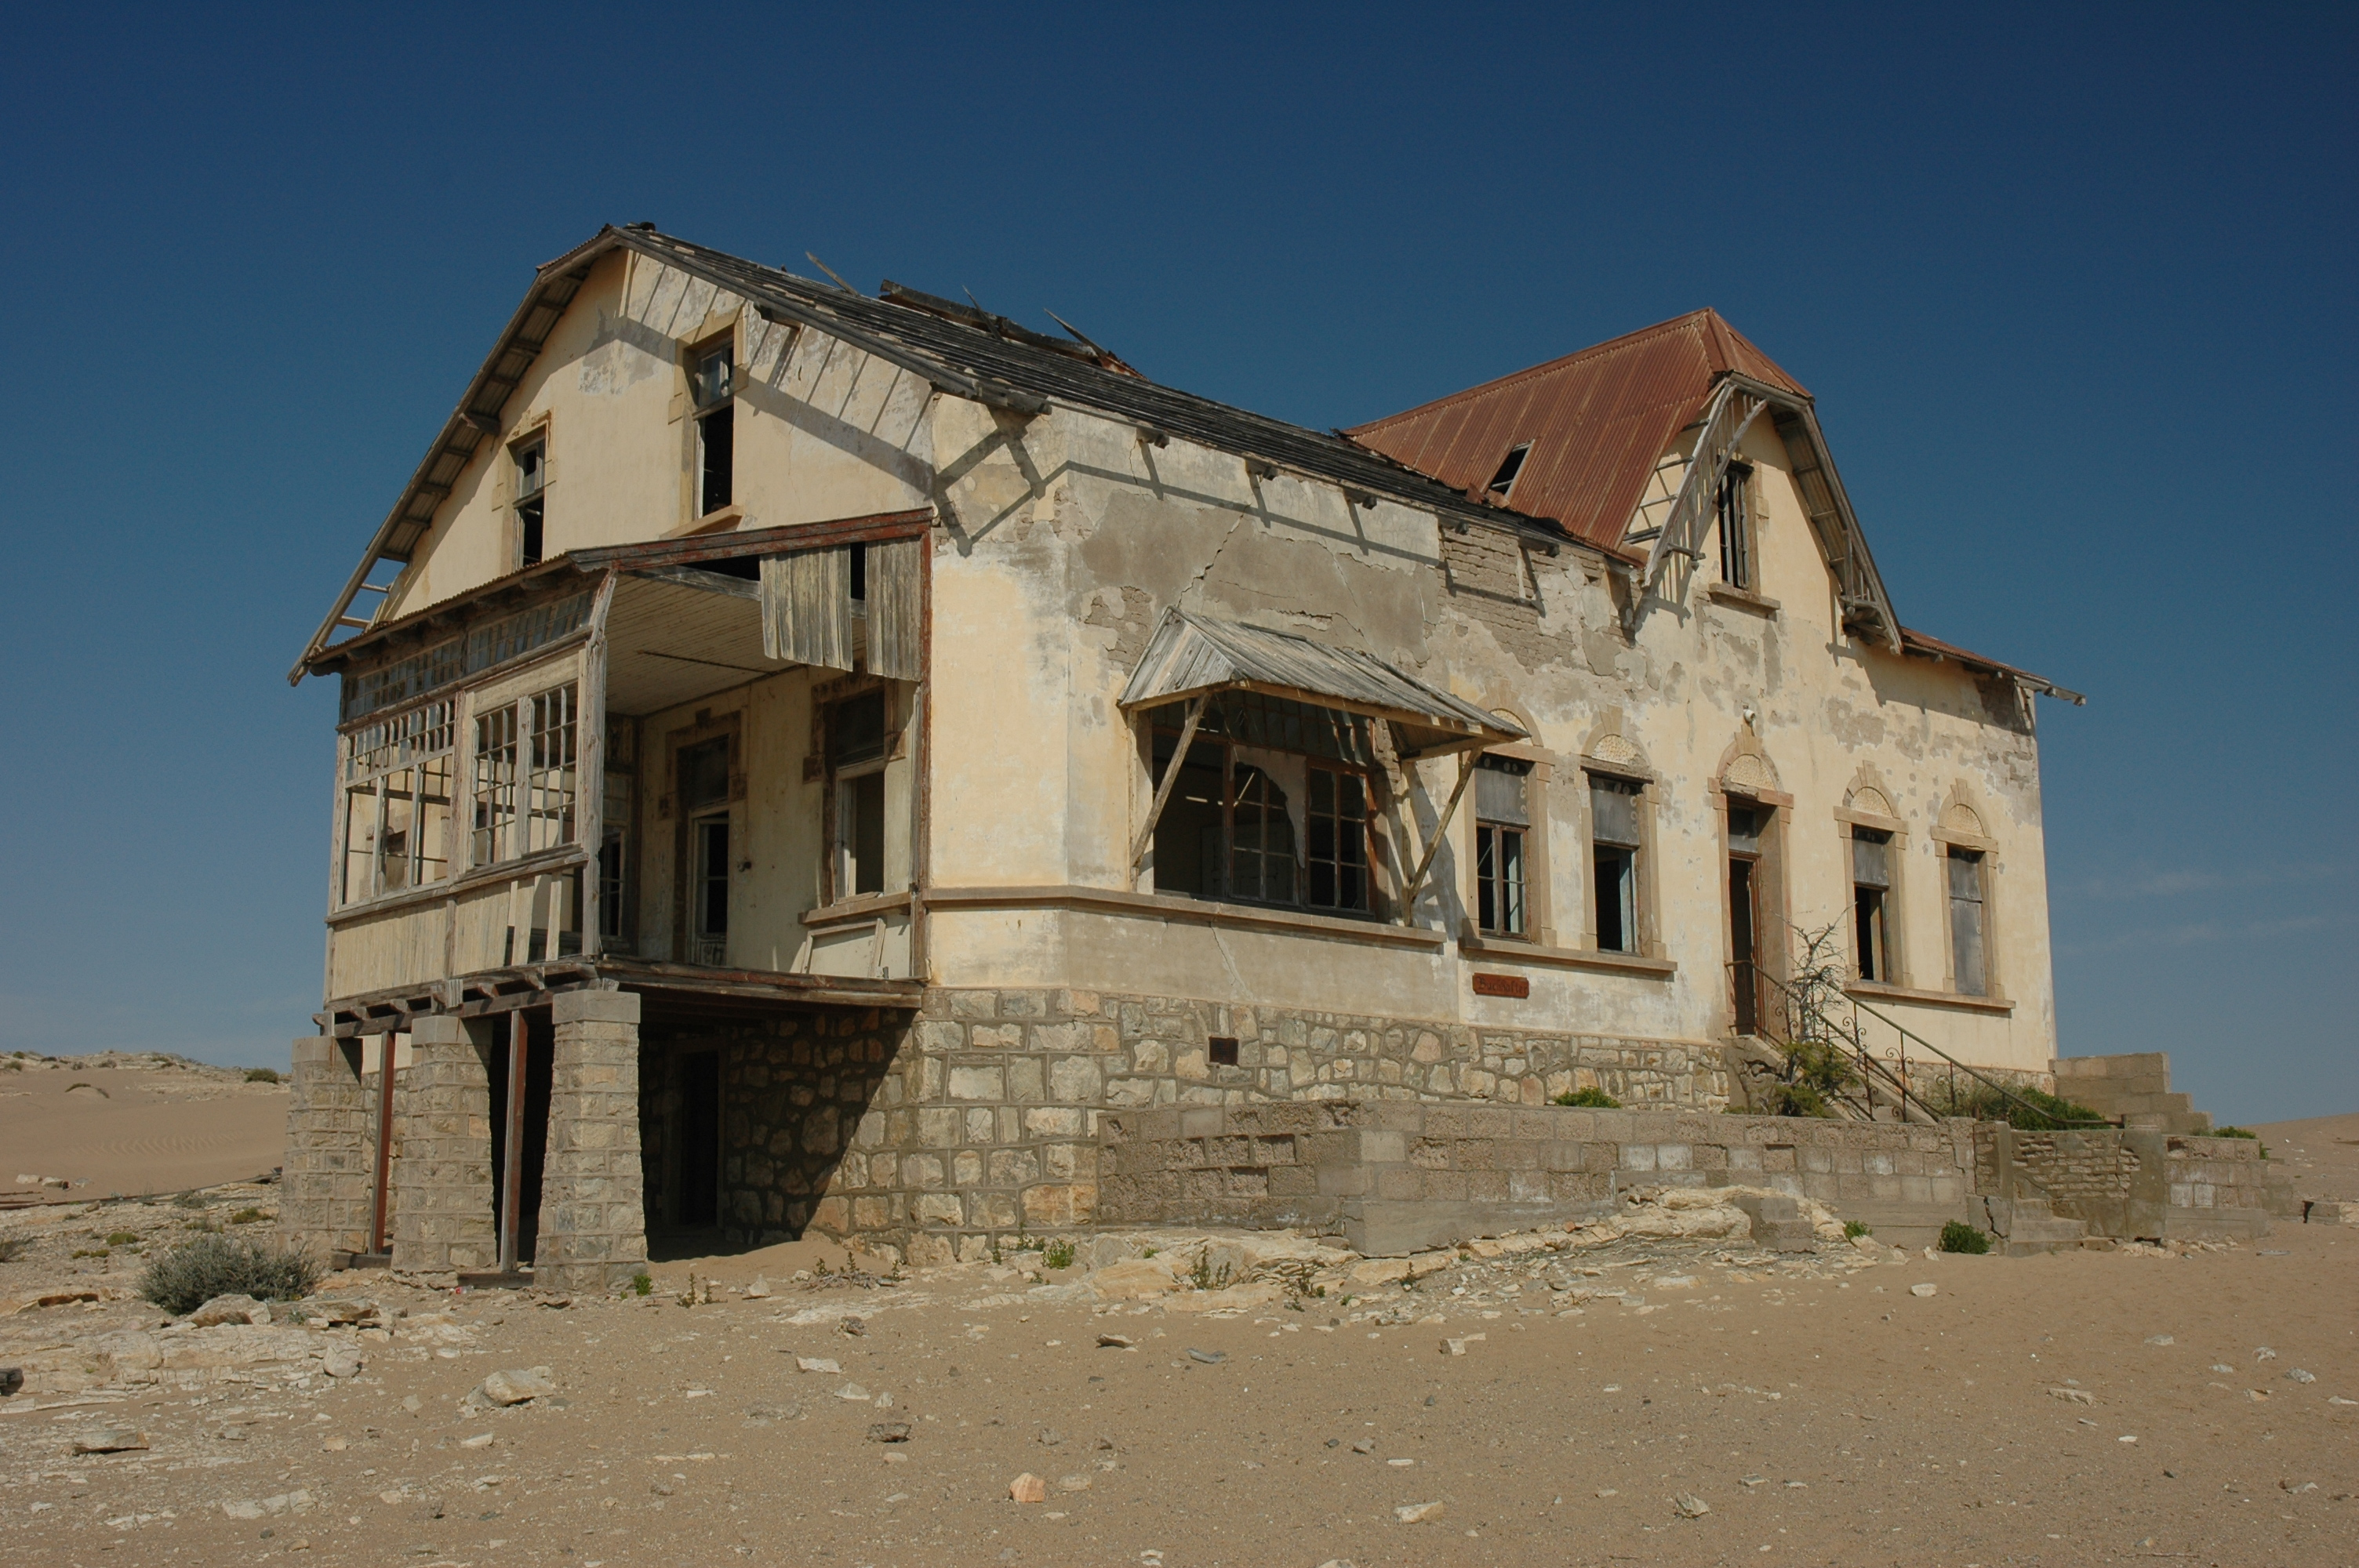 kolmanskop a ghost town devoured by the namibian desert